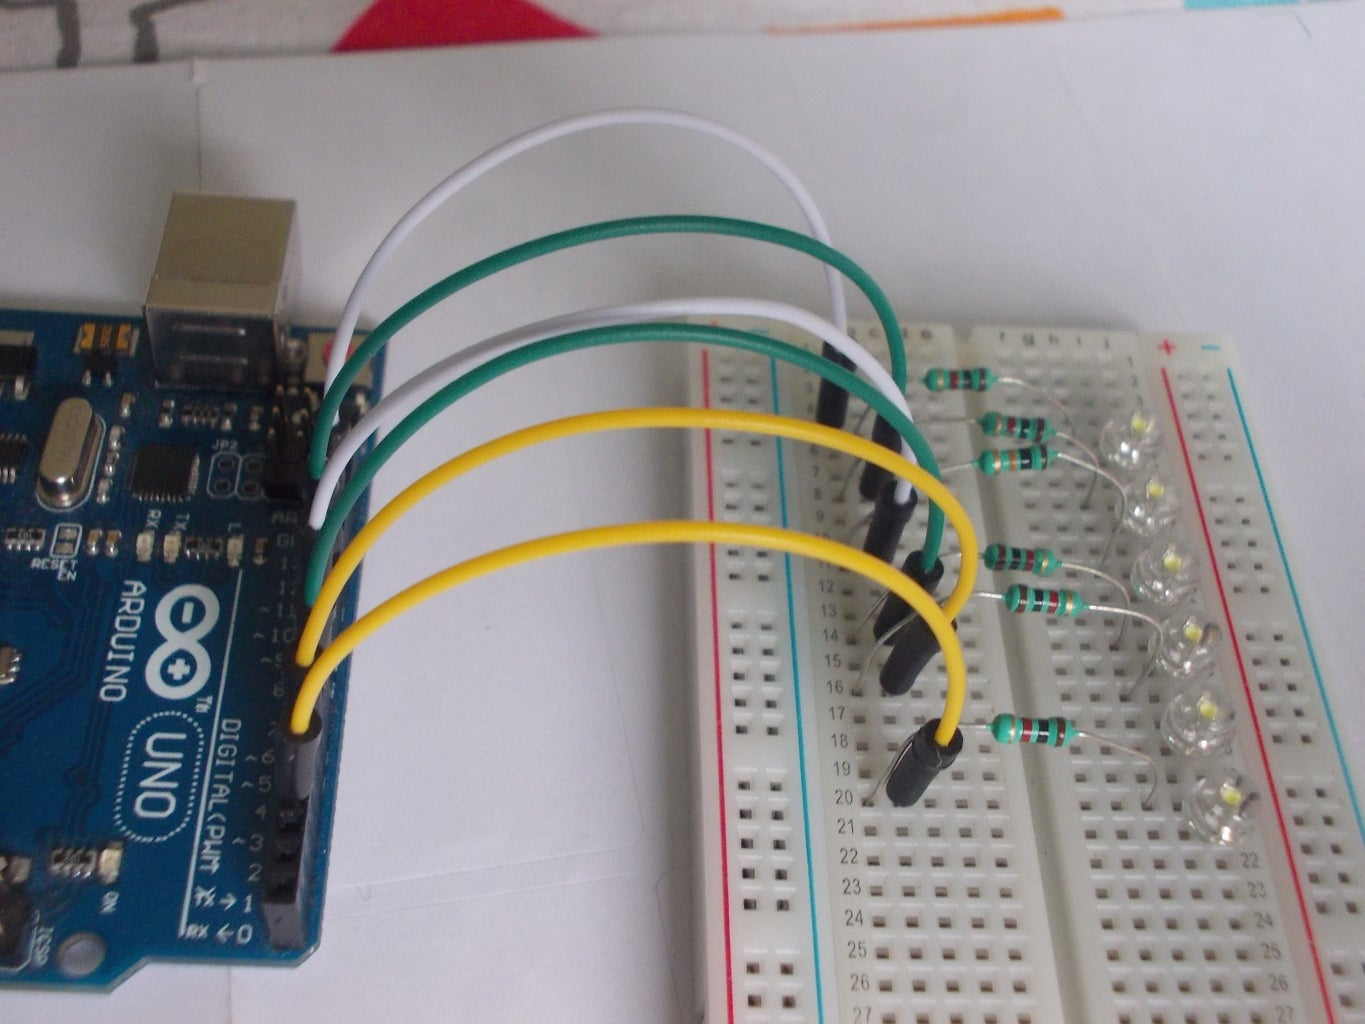 Connect the LED's to the Arduino.